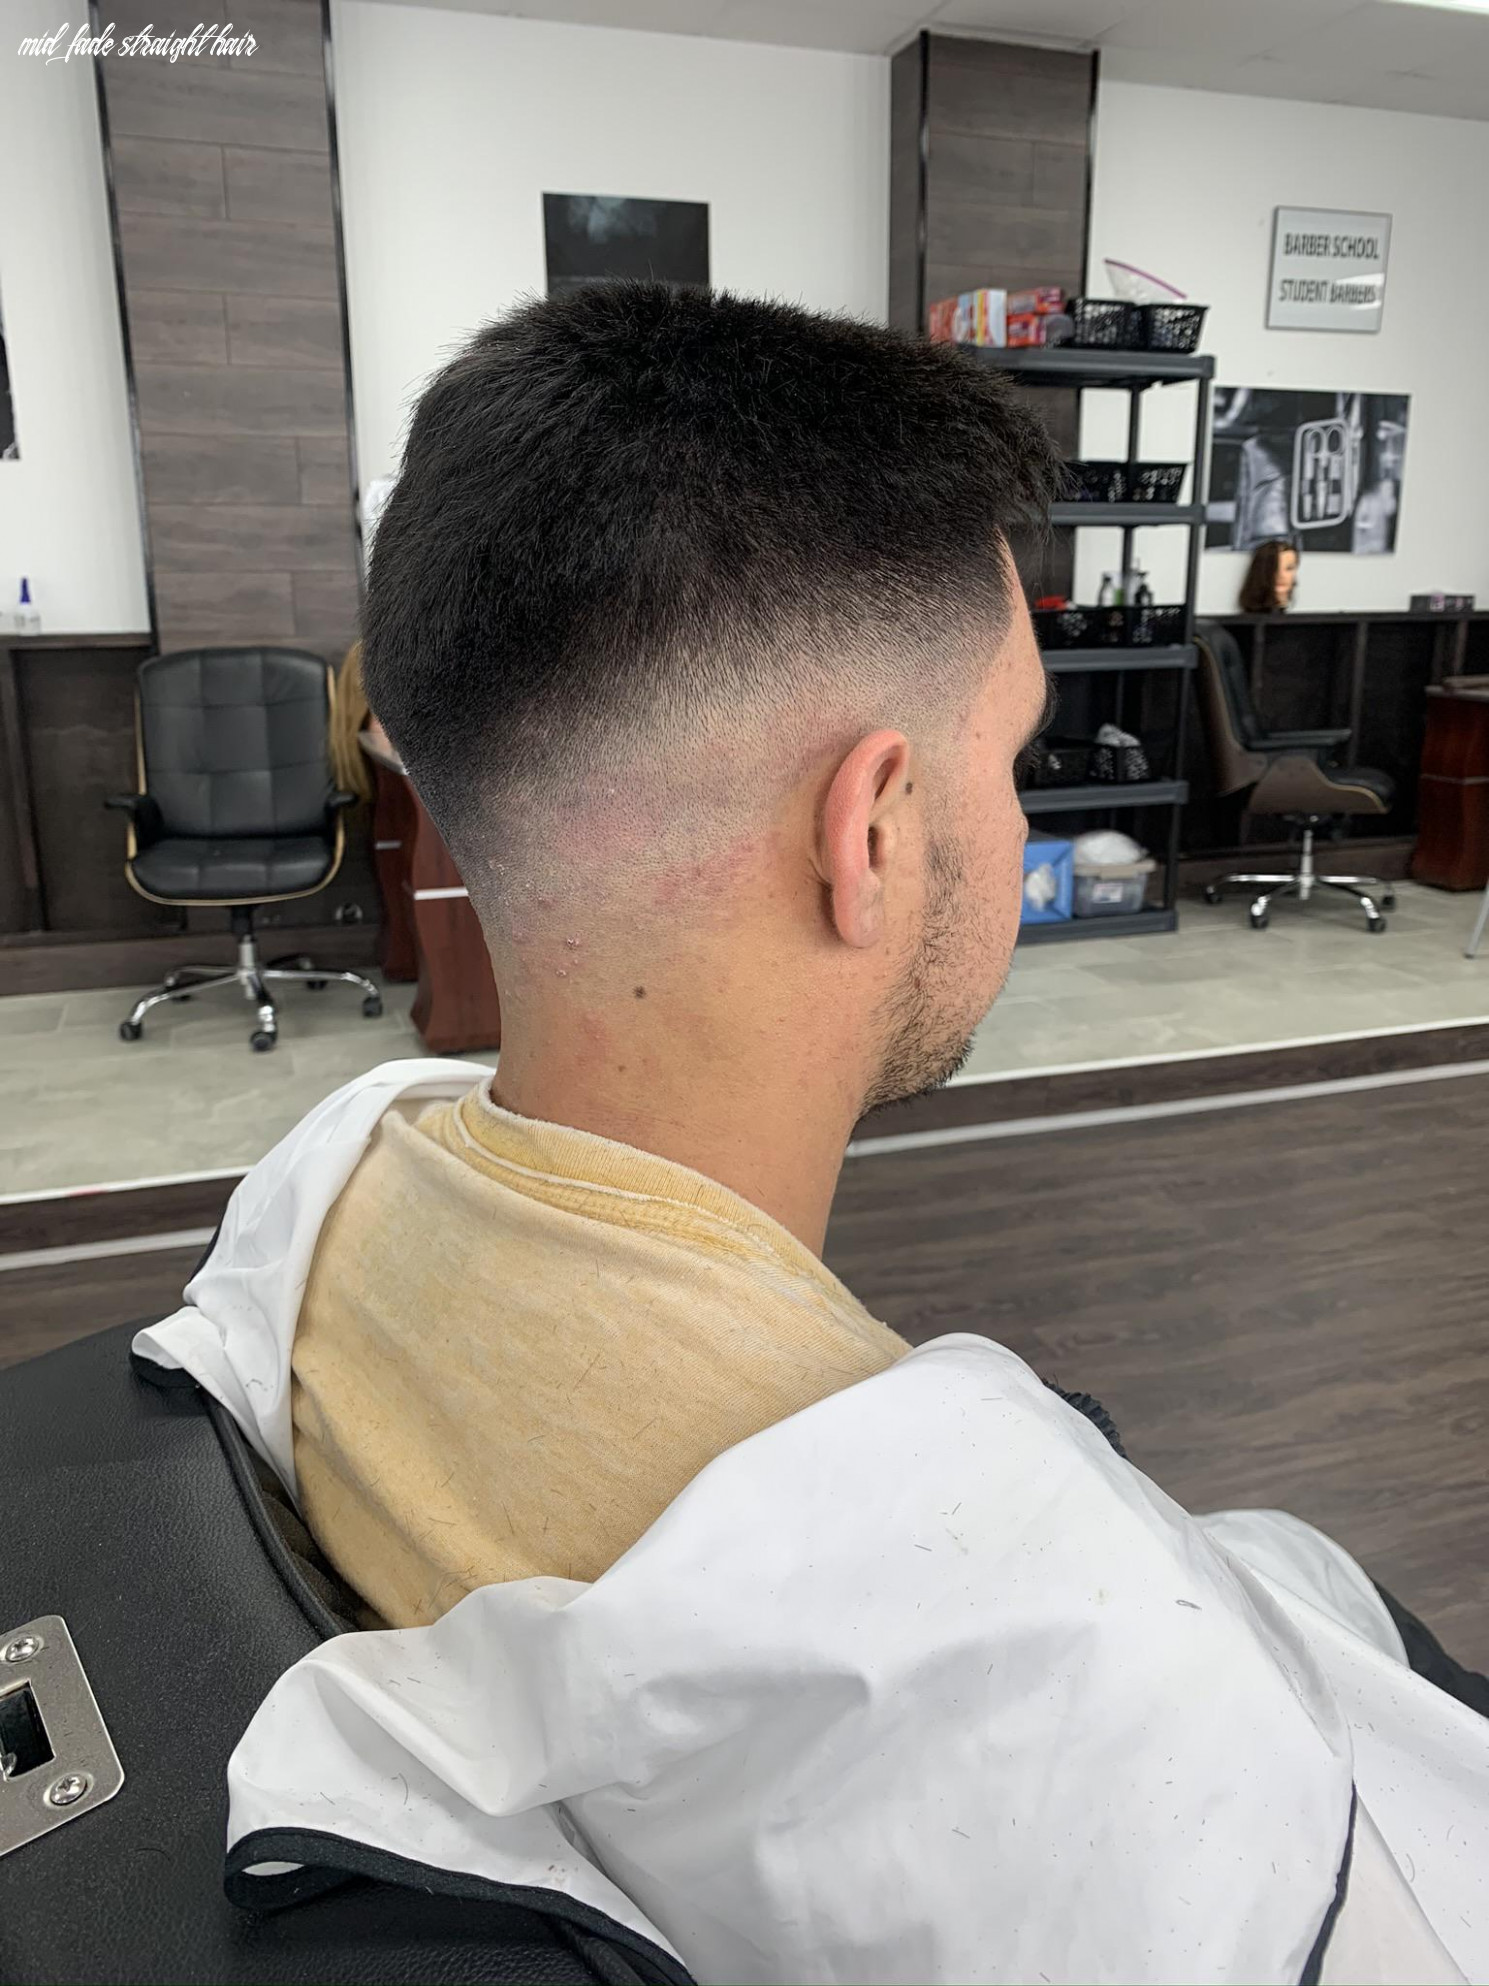 Mid/high fade thoughts? straight hair client, been cutting for a